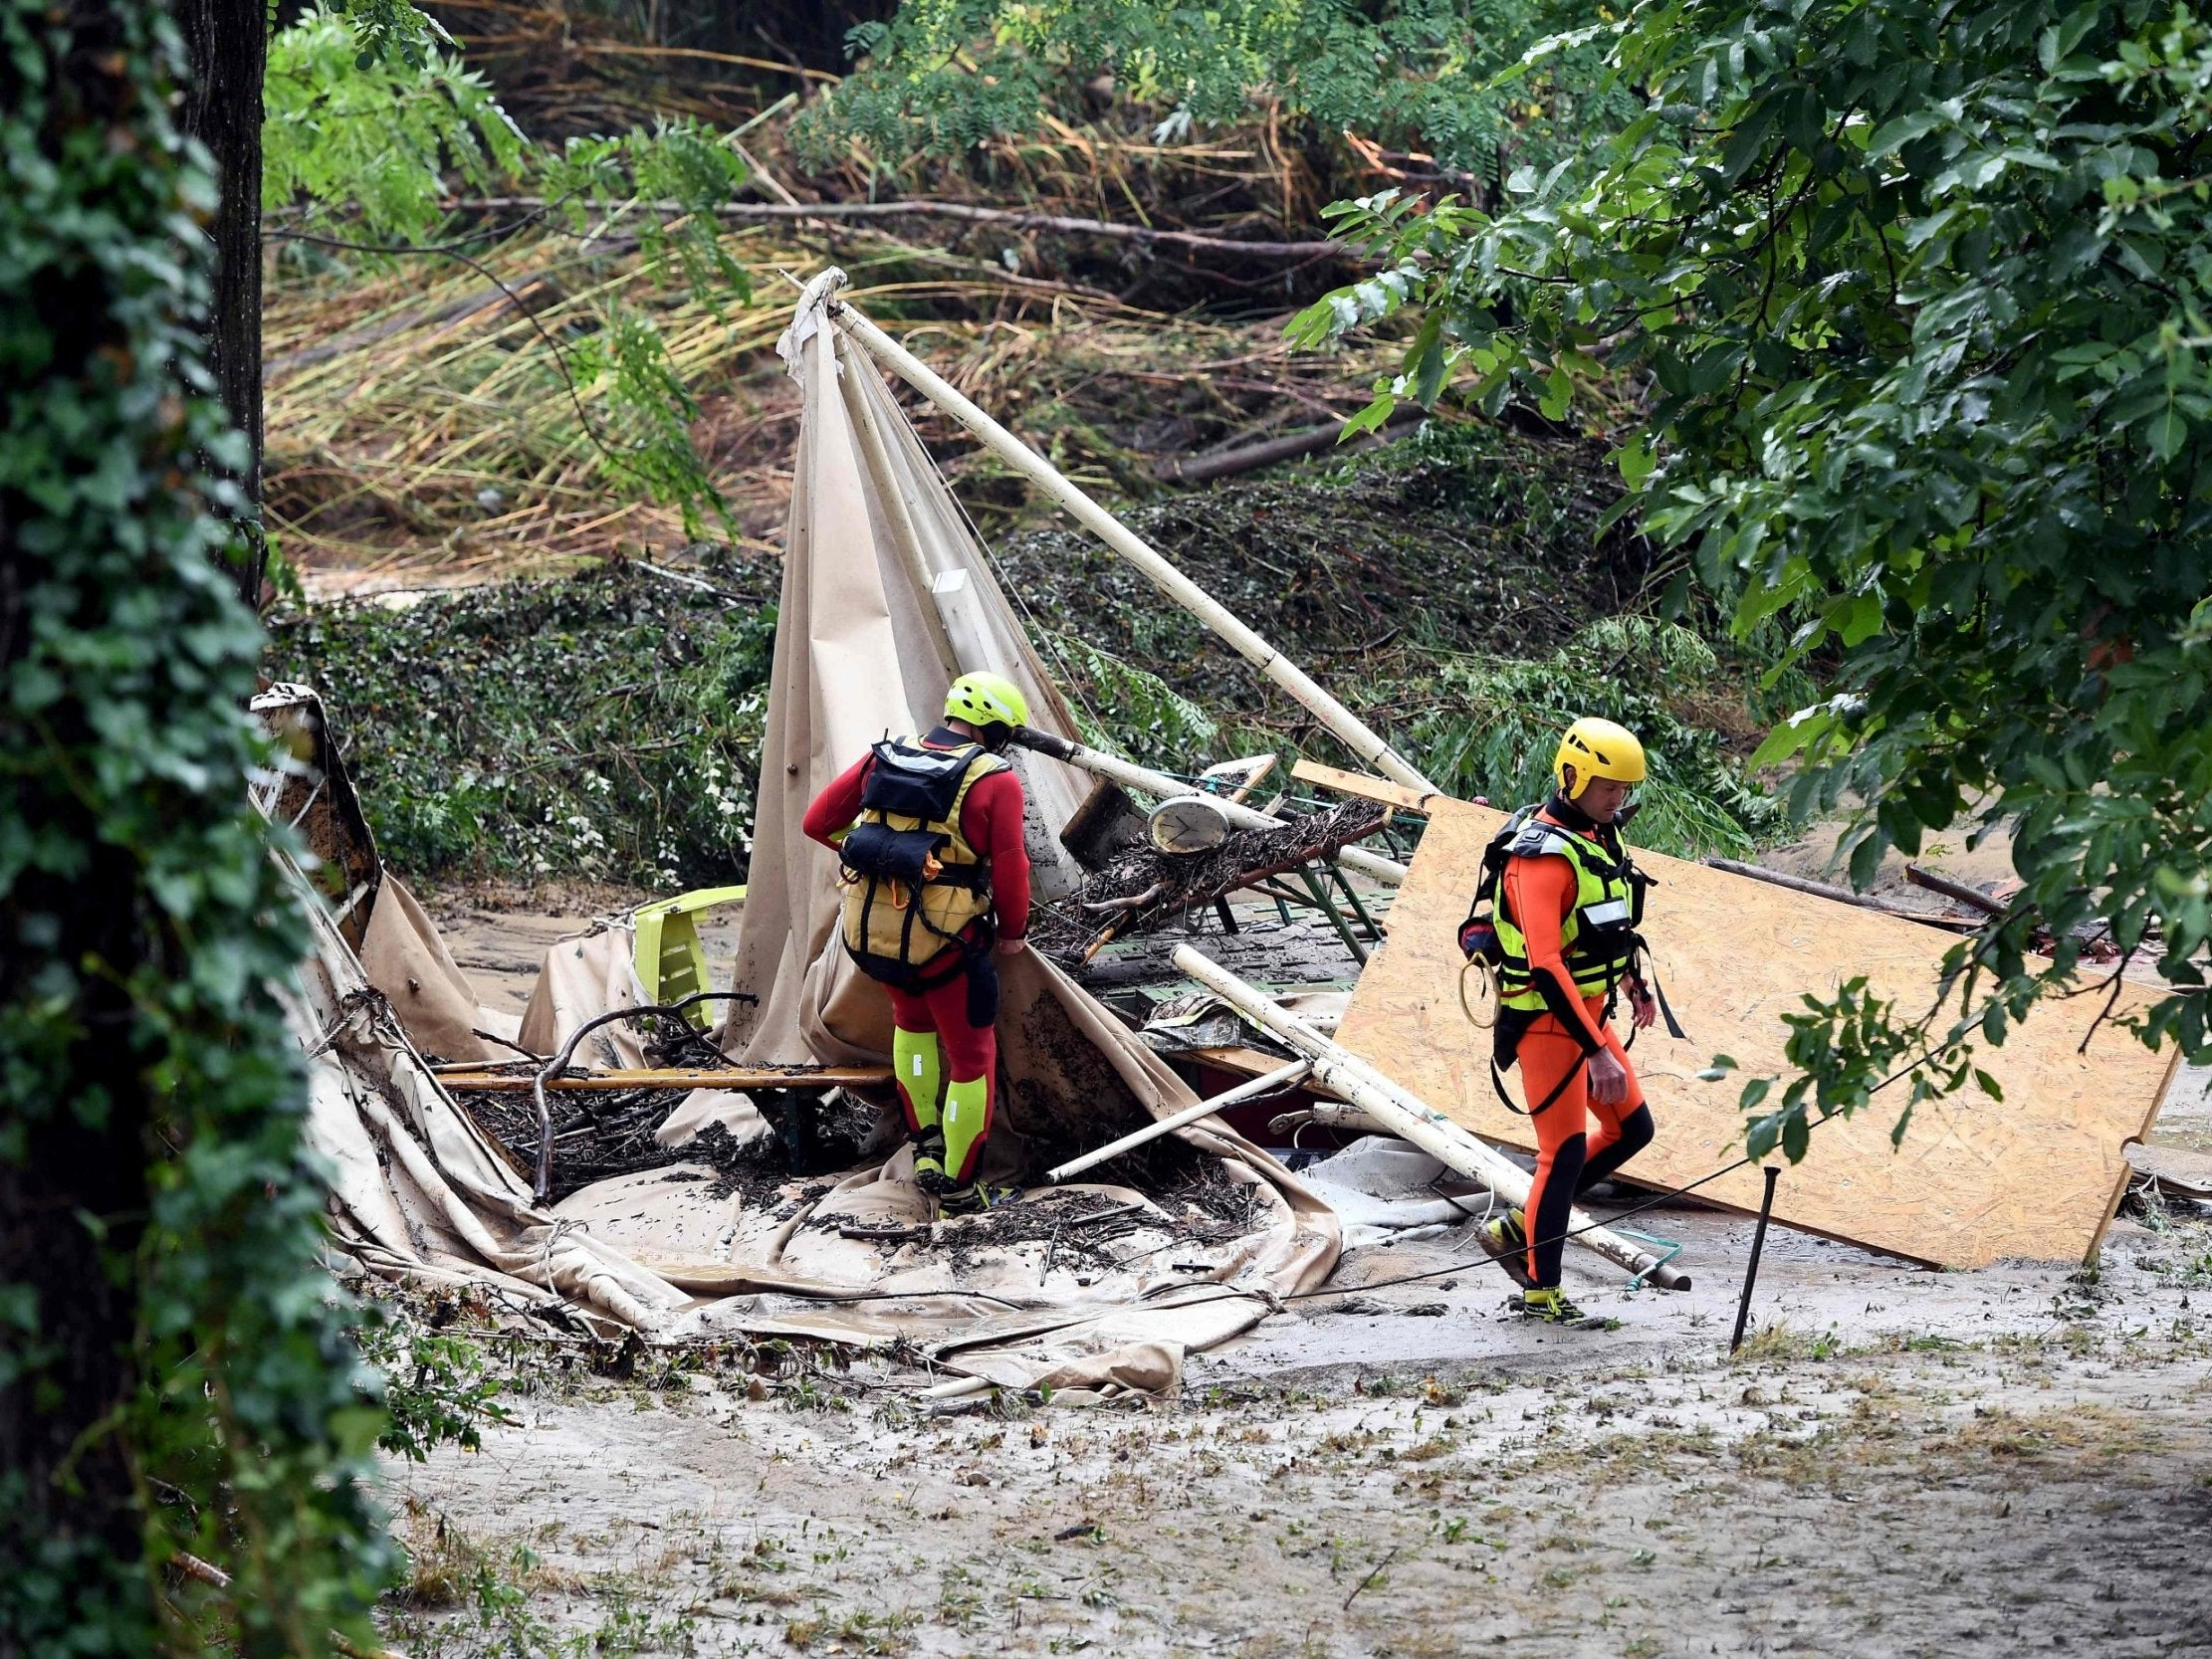 France floods: Pensioner swept away and 1,600 people evacuated by helicopters and rescuers from Gard campsites